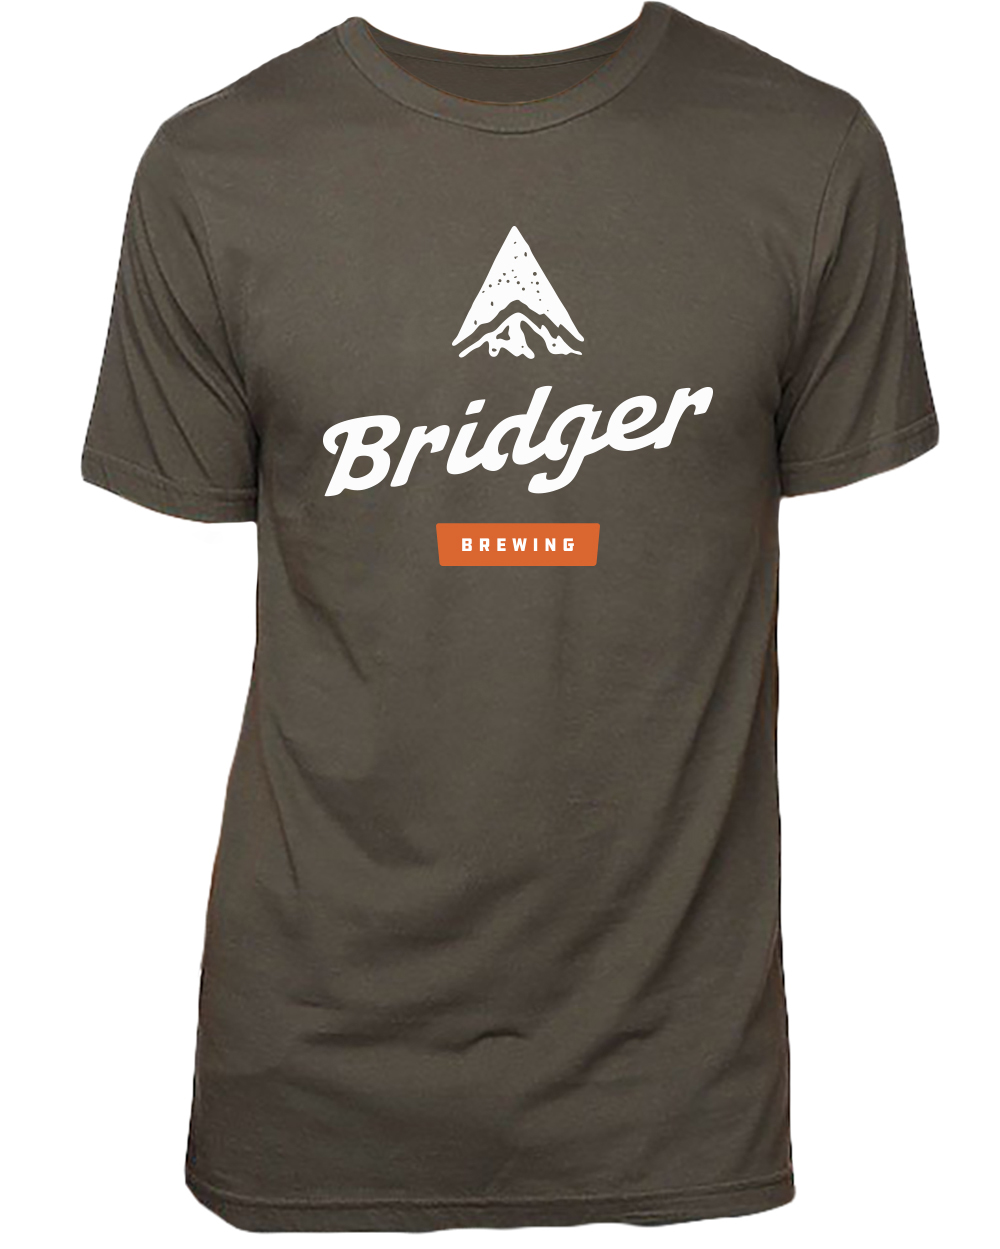 Made of viscose hemp and organic cotton, this unisex logo t-shirt is sustainable, environmentally friendly and super soft. It features the primary Bridger Brewing logo on the front and the smaller stamp logo on the upper back.